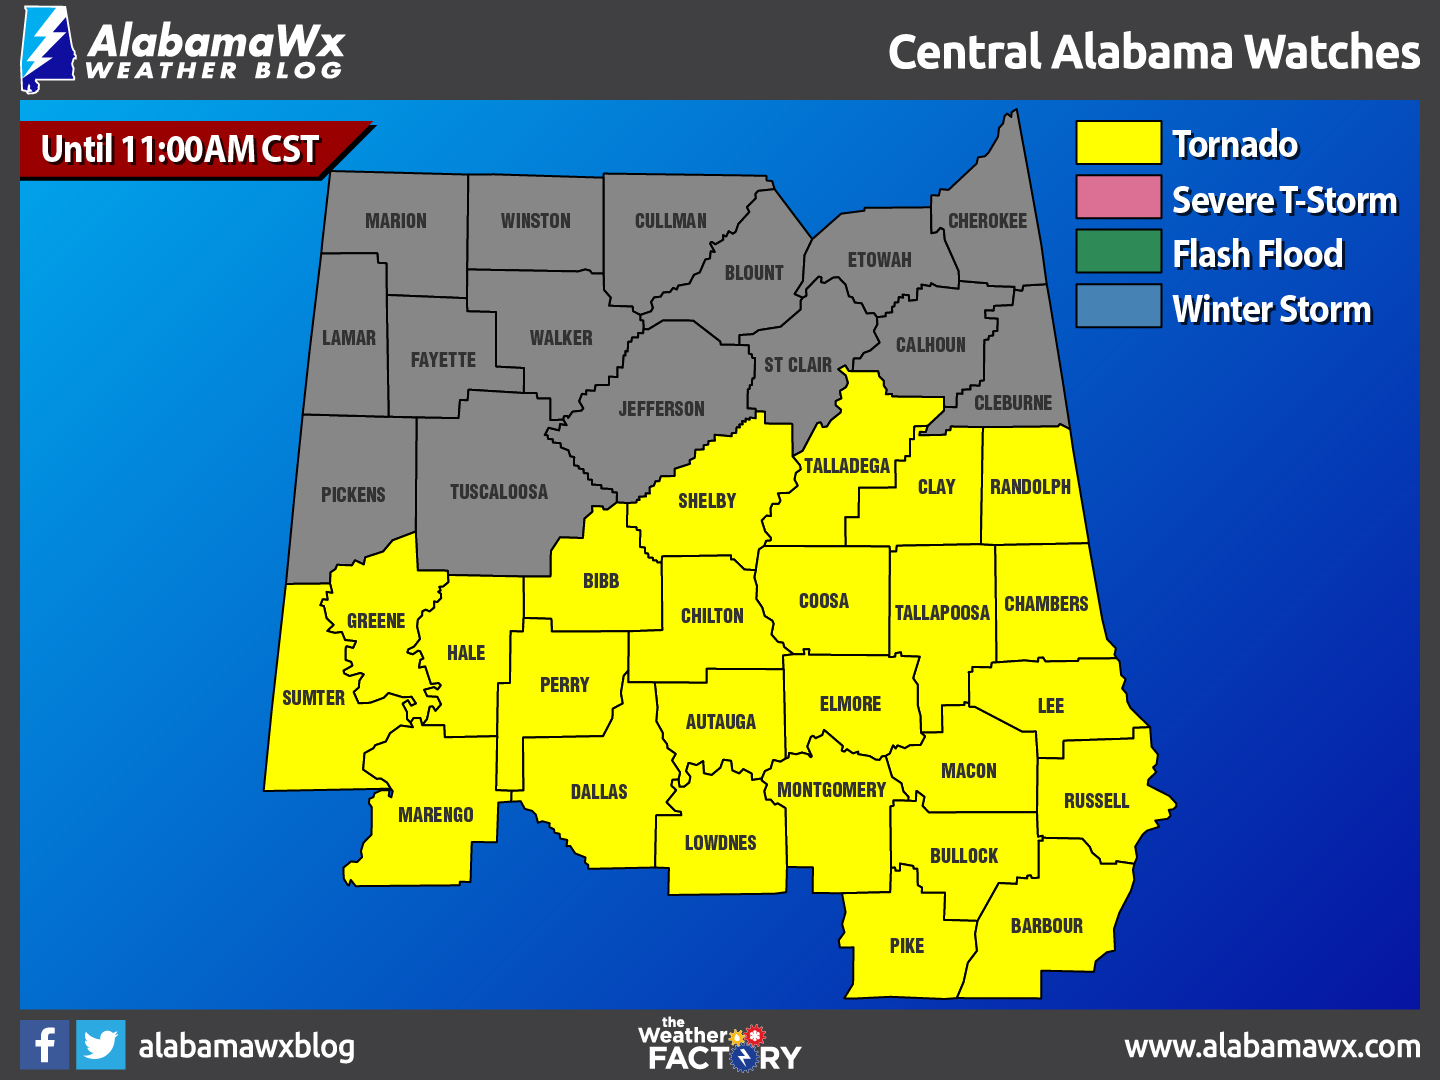 A New Tornado Watch For Parts Of Central Alabama Until 11:00 AM CST ...